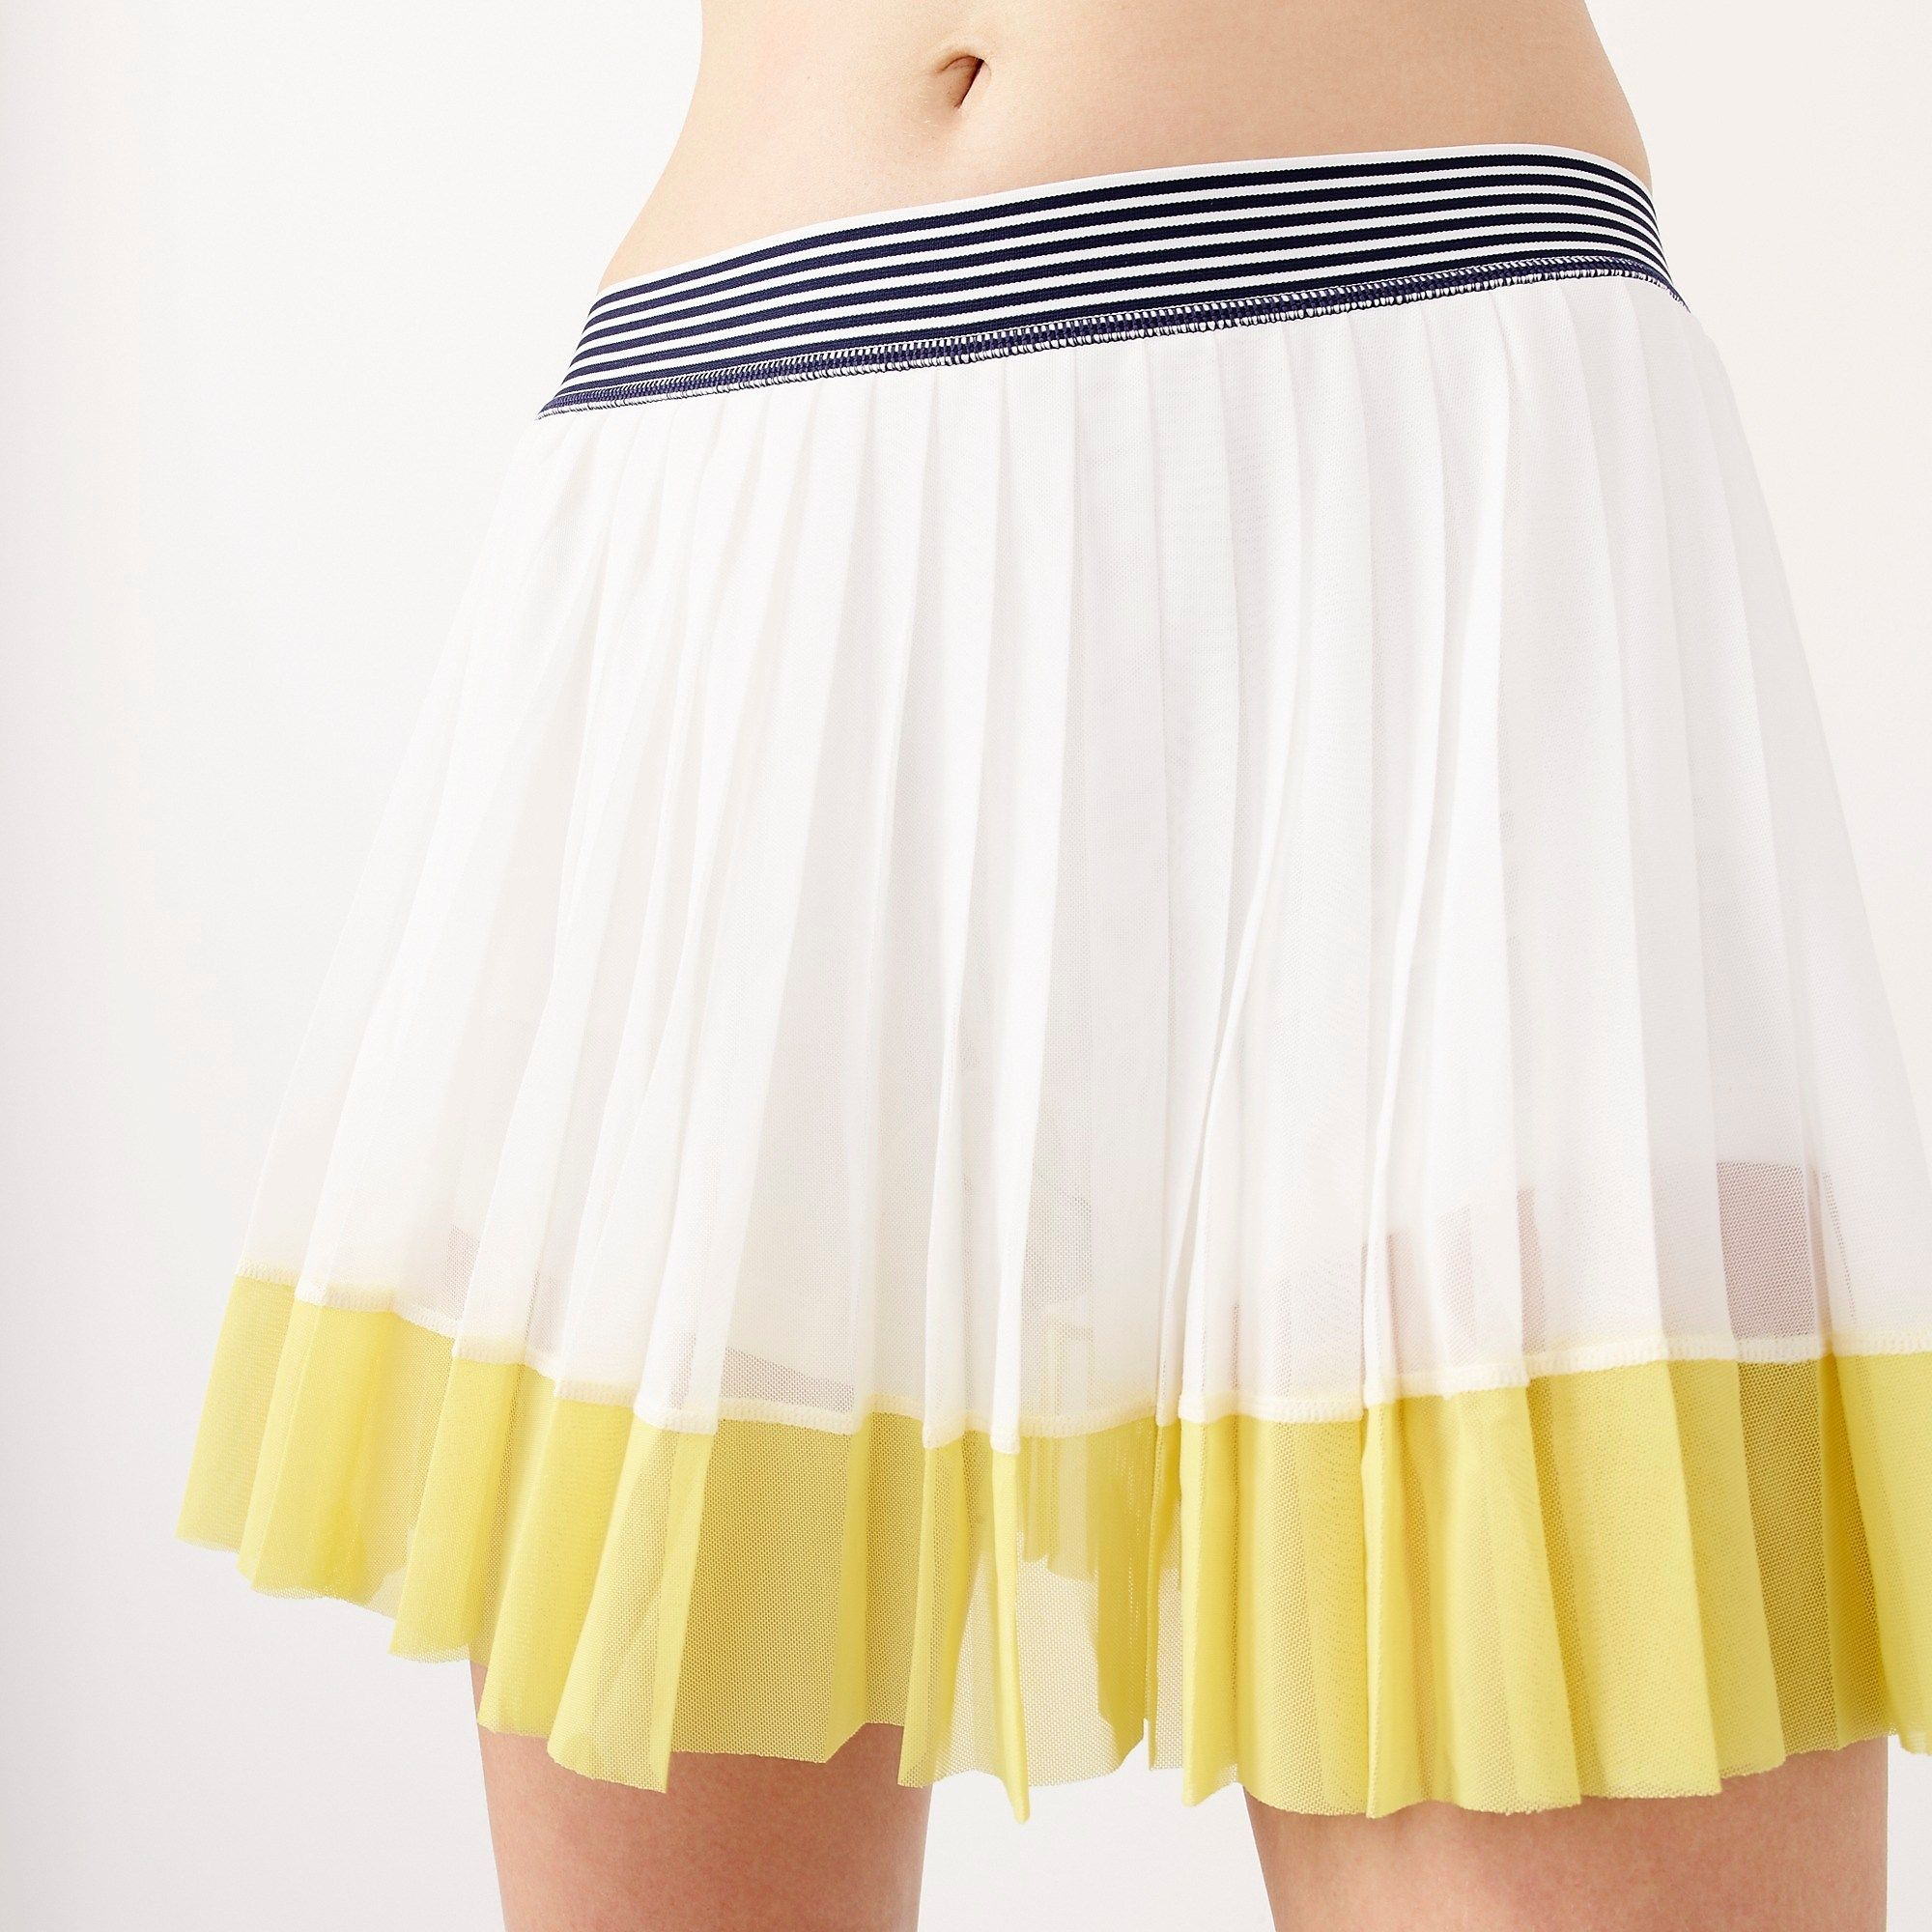 New Balance For J Crew Tennis Skirt In Colorblock